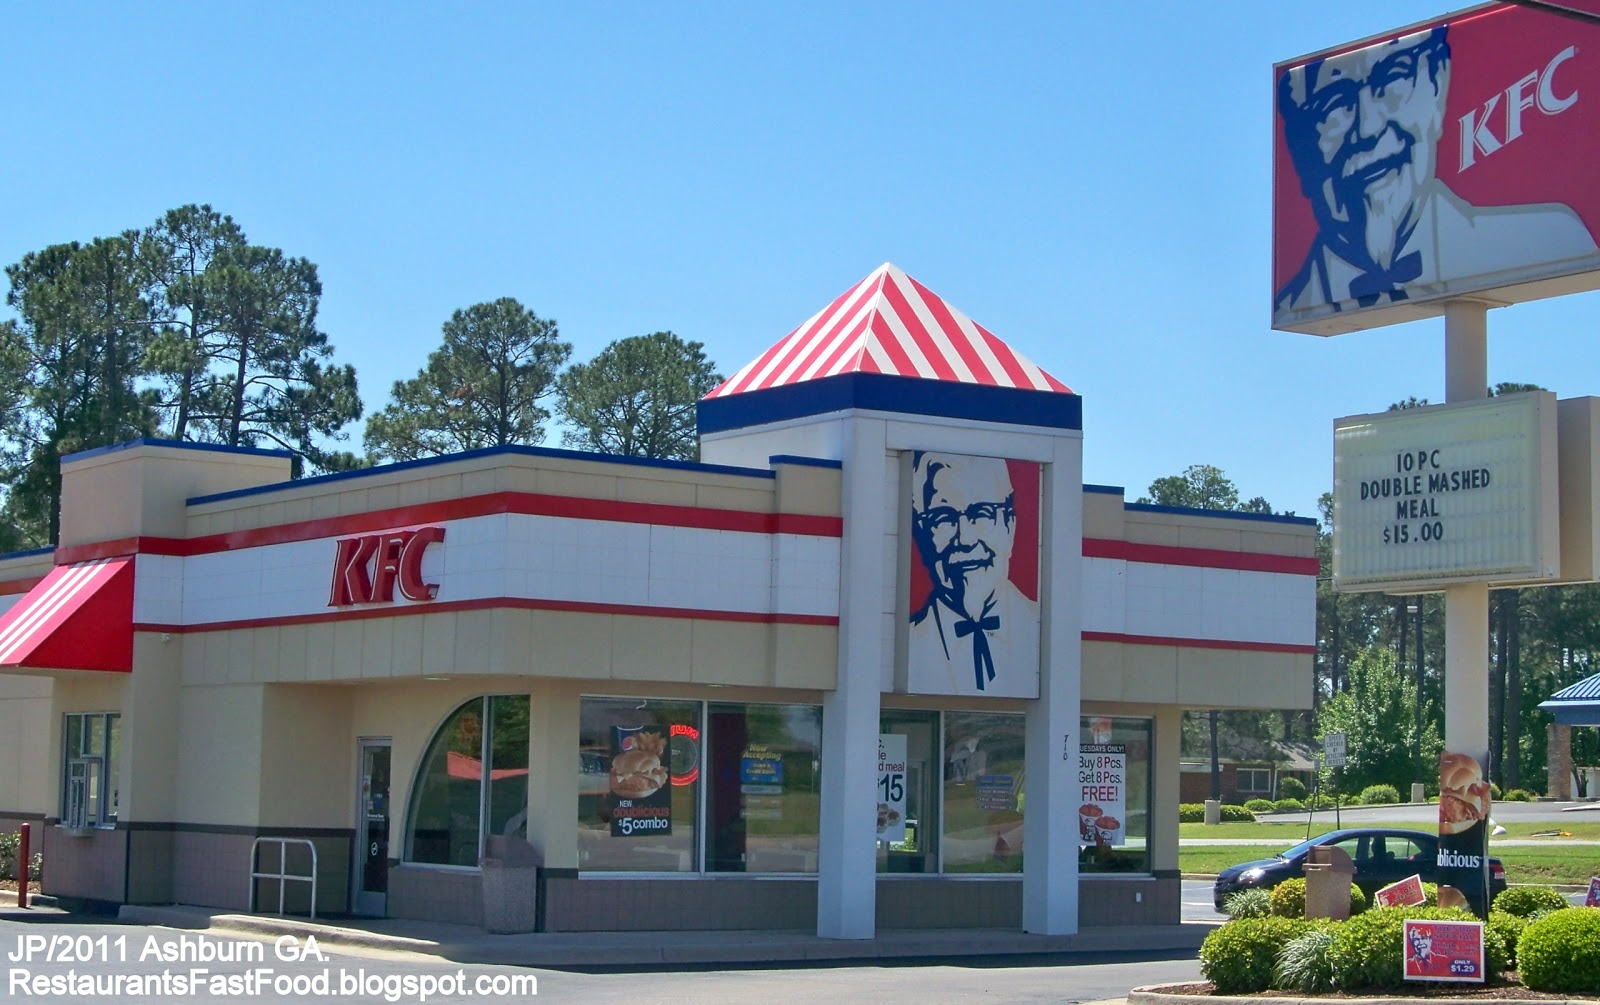 http://2.bp.blogspot.com/-0buGC8JiokE/TmrSg4tUT7I/AAAAAAAEbzc/NKoVg1yZNpg/s1600/KFC%20KENTUCKY%20FRIED%20CHICKEN%20ASHBURN%20GEORGIA%2C%20Kentucky%20Fried%20Chicken%20KFC%20Fast%20Food%20Restaurant%20Ashburn%20GA..JPG